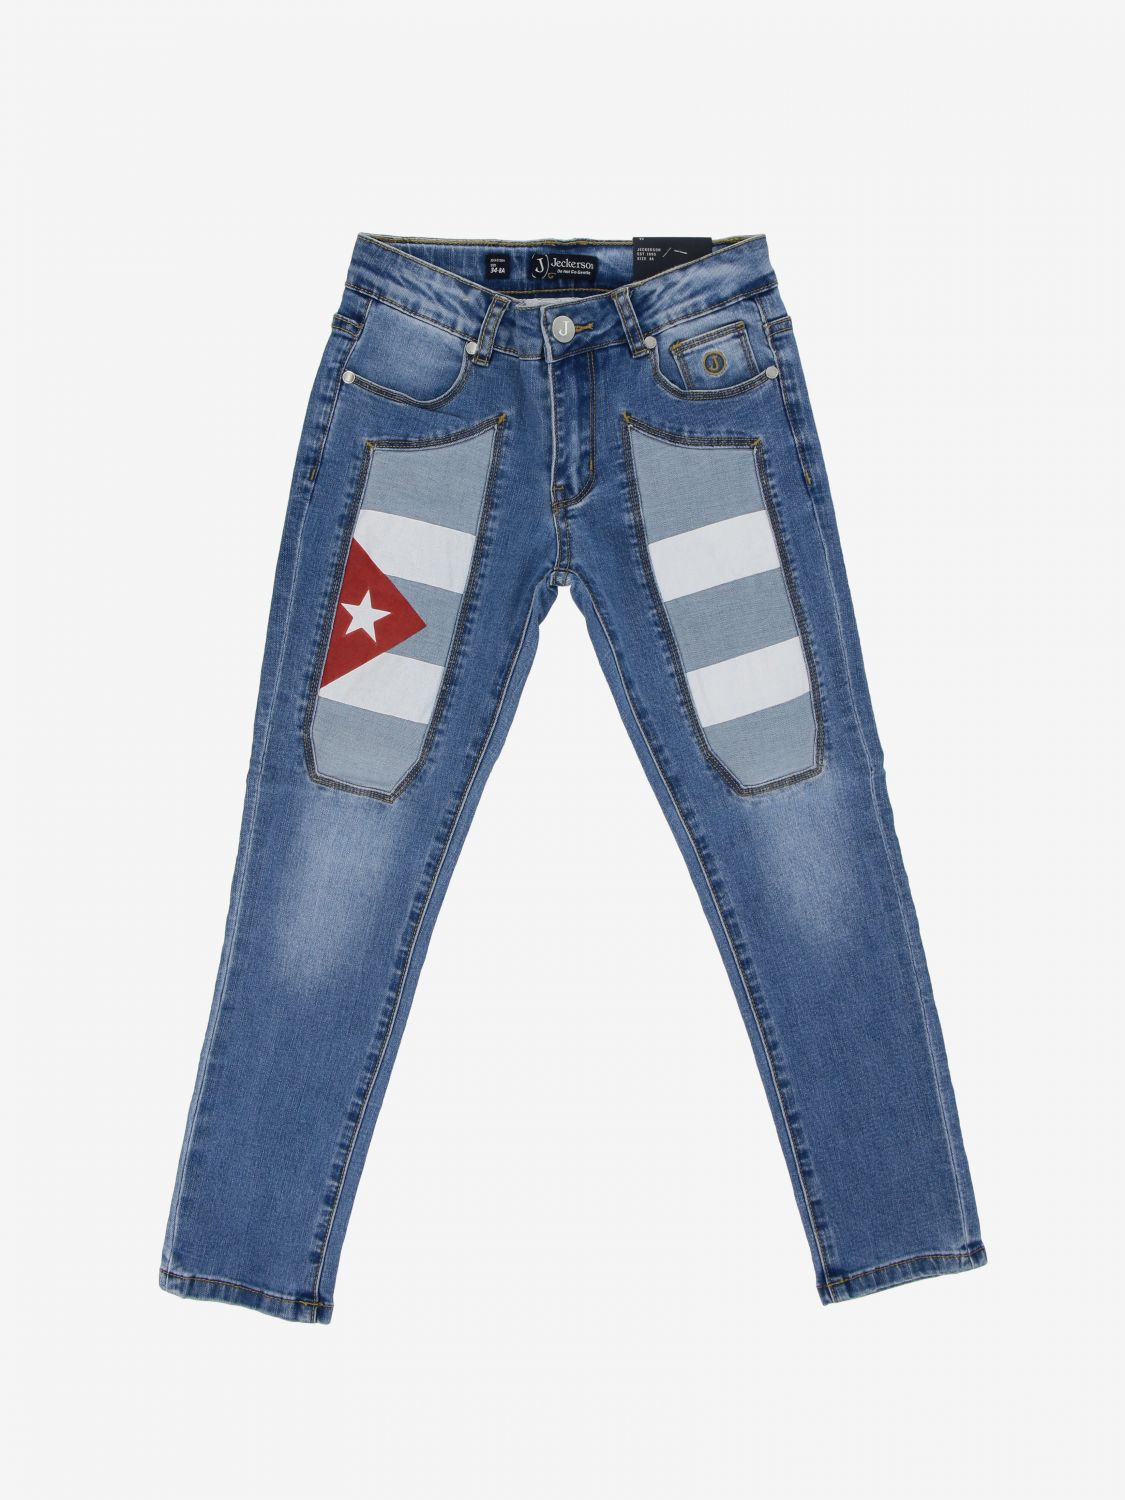 Jeckerson denim jeans with Cuba flag patches stone washed 1